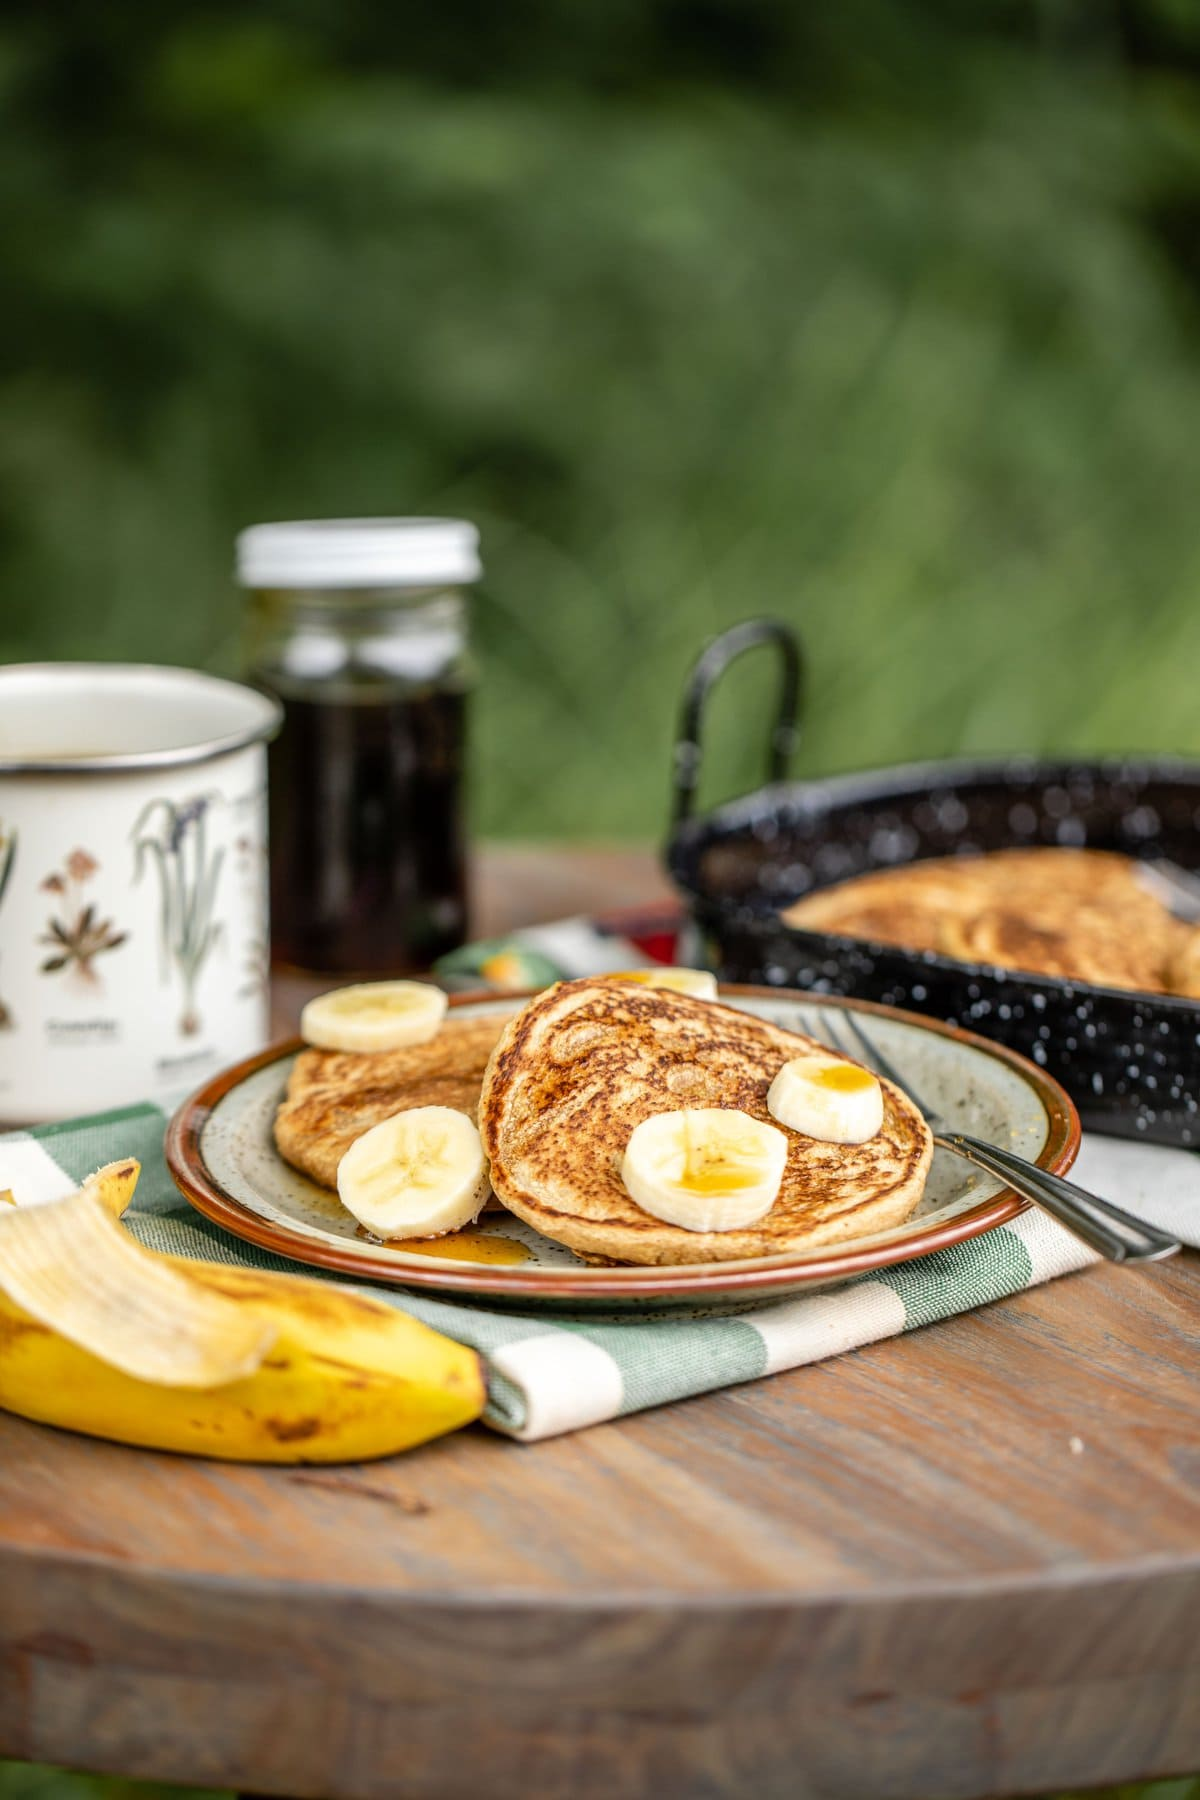 vegan pancakes topped with banana and maple syrup with mug of coffee on picnic table